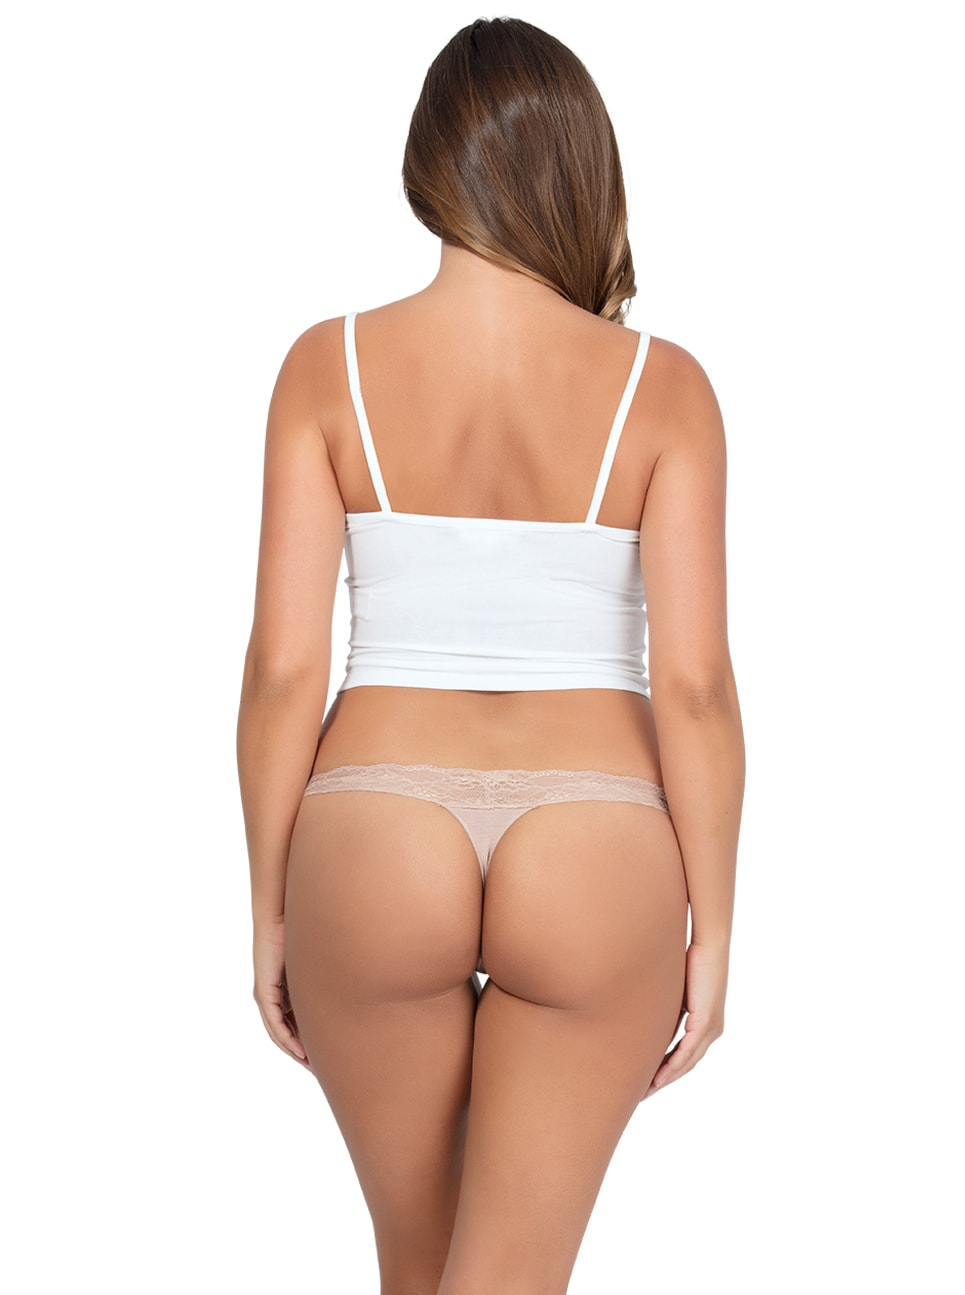 PARFAIT ParfaitPanty SoEssential ThongPP403 Bare Back copy - Panty So Essential Thong- Bare - PP403